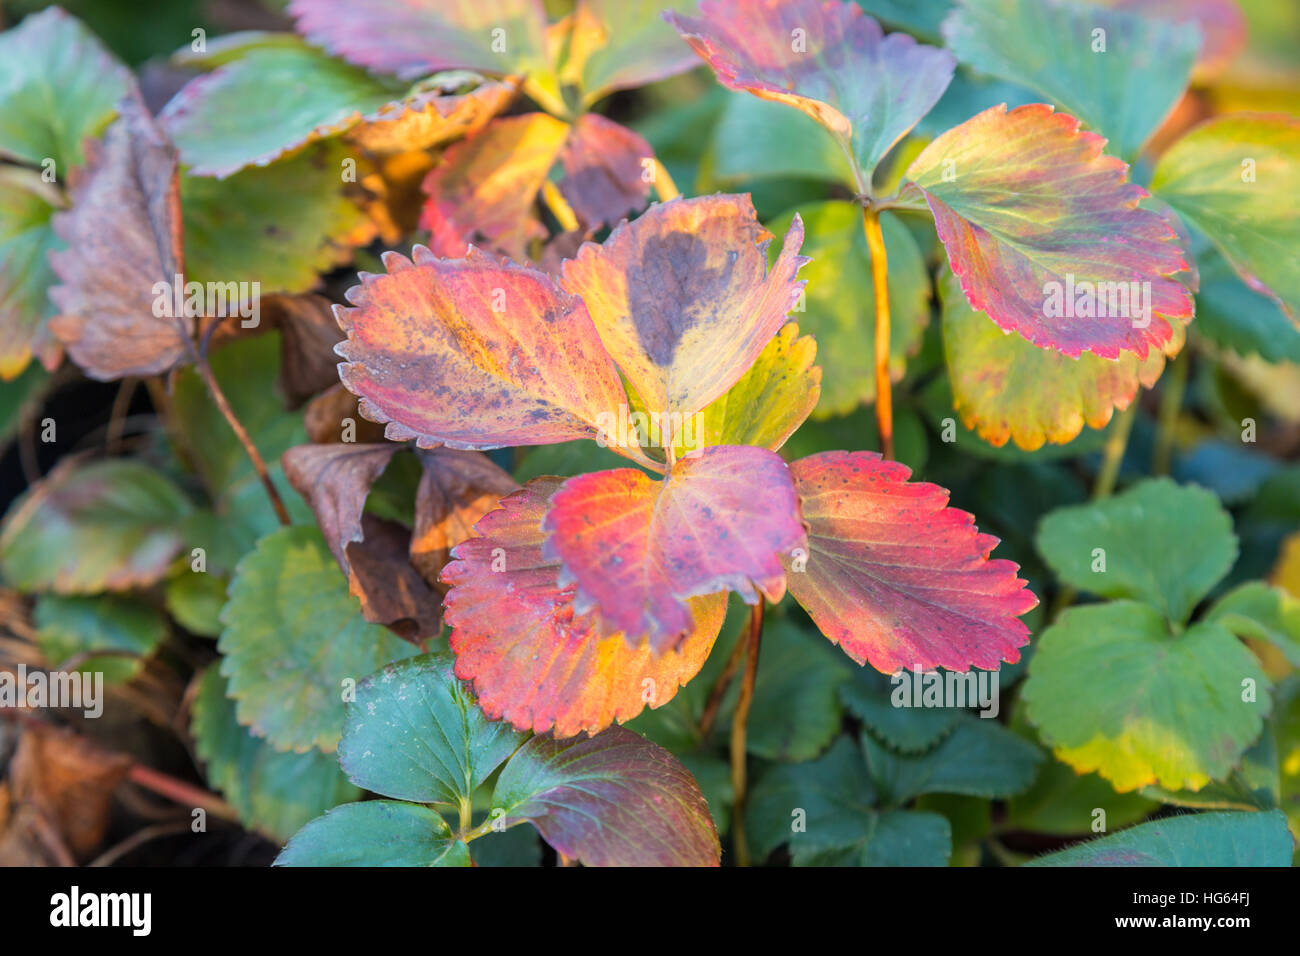 Strawberry plant leaves stock photos strawberry plant leaves stock strawberry plant in autumn with changing colours to pink and yellow stock image mightylinksfo